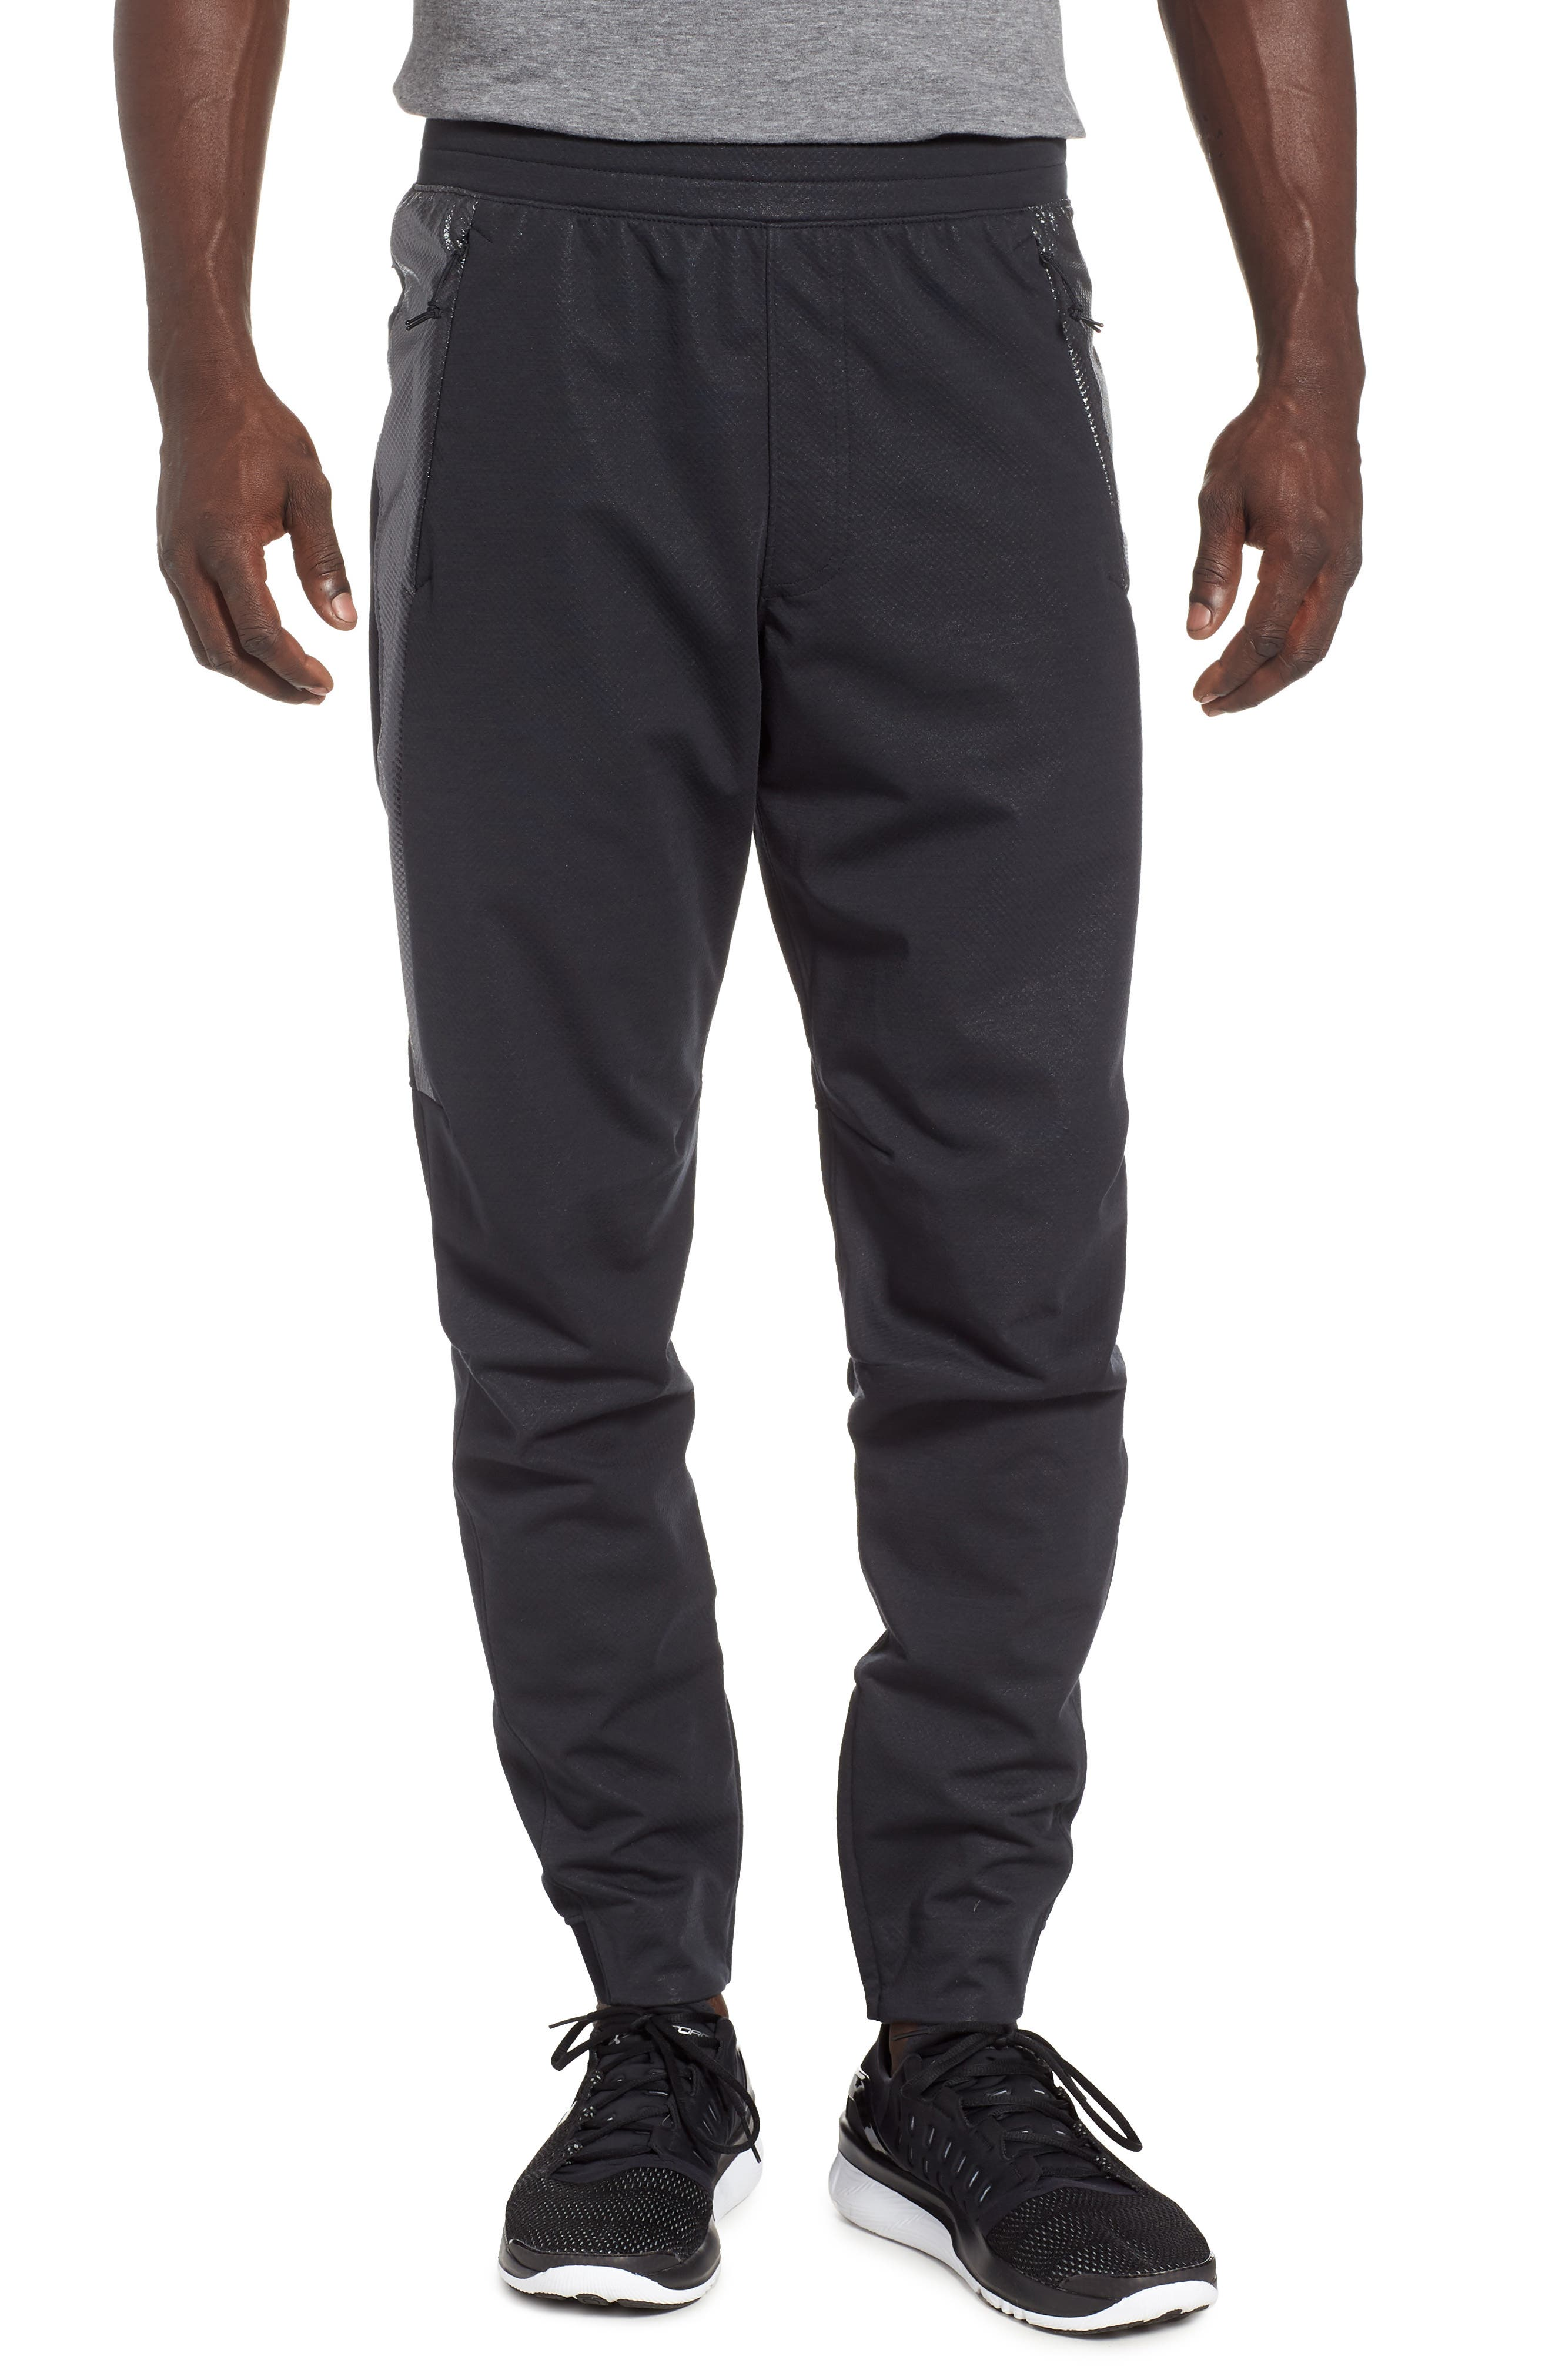 Unstoppable Swacket Training Pants,                         Main,                         color, BLACK FULL HEATHER/ BLACK